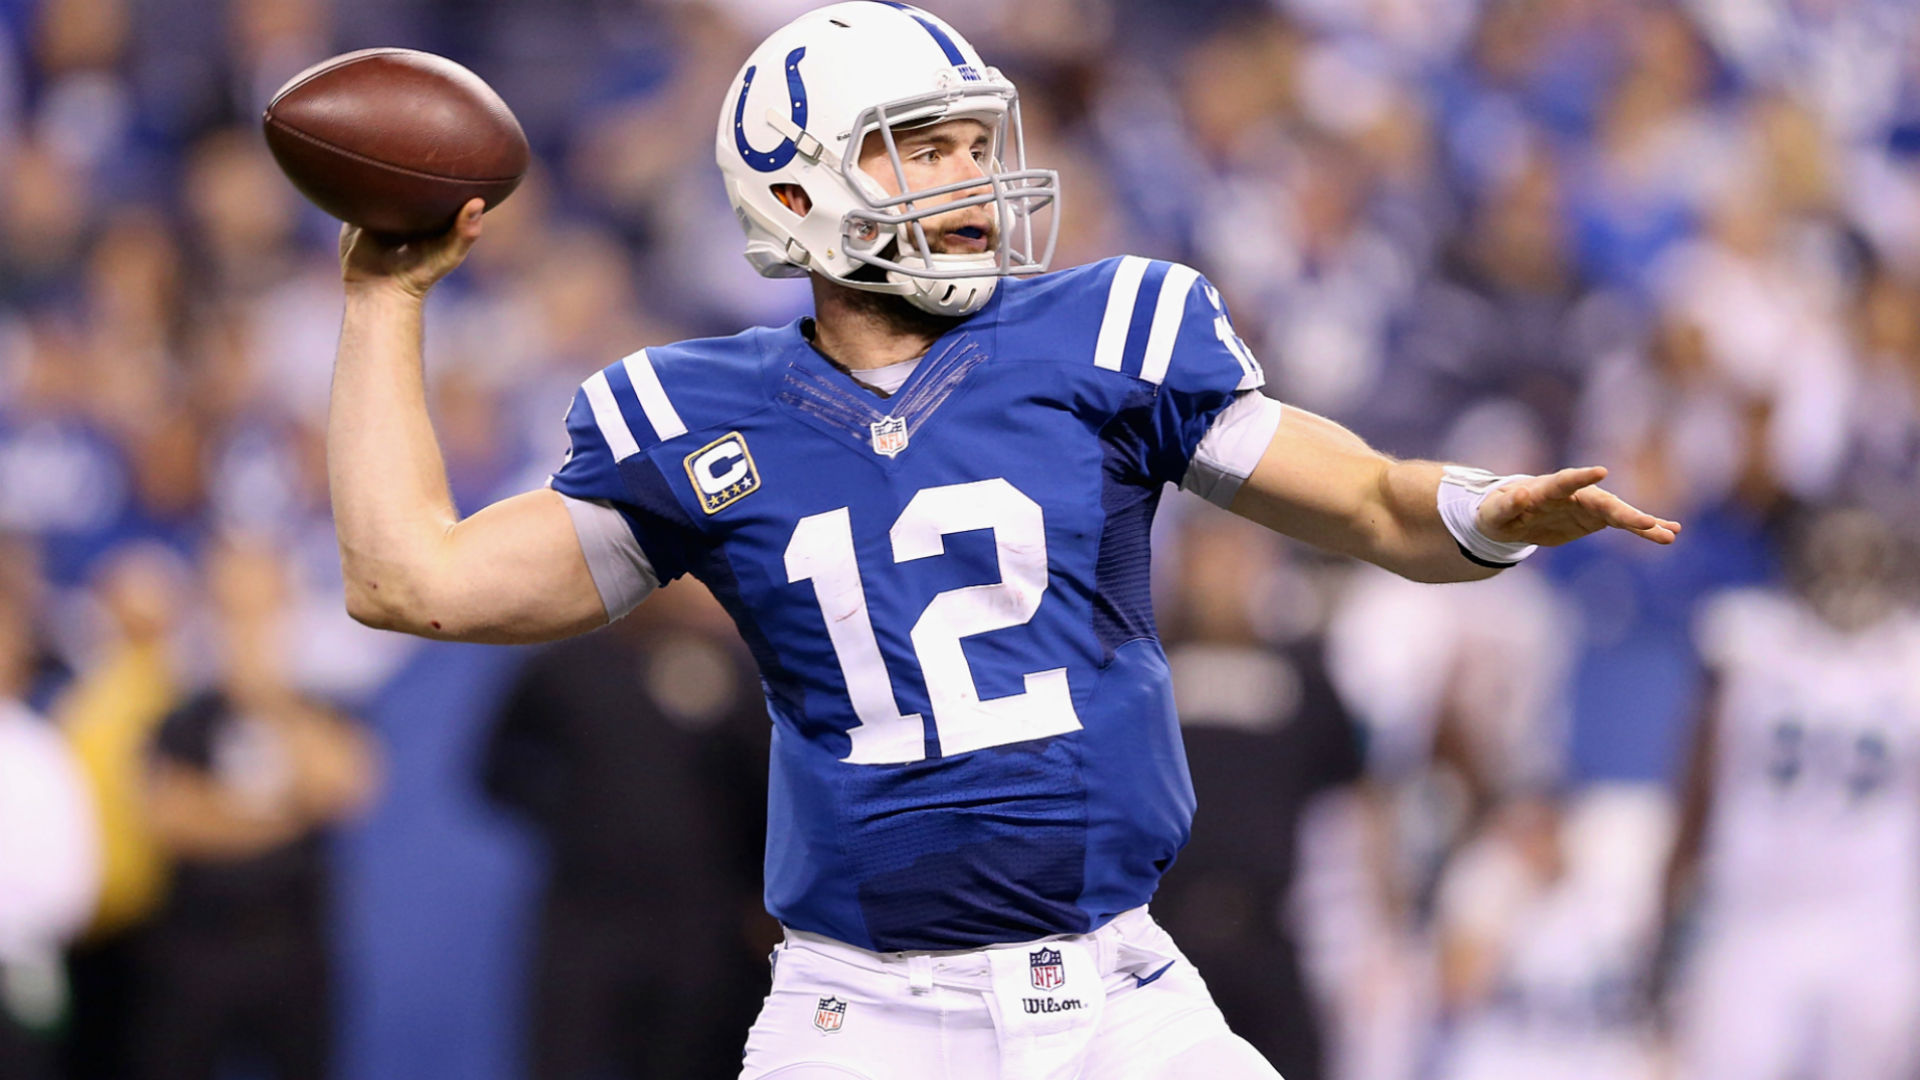 Redskins vs. Colts betting preview and pick – Indy inches into double digits